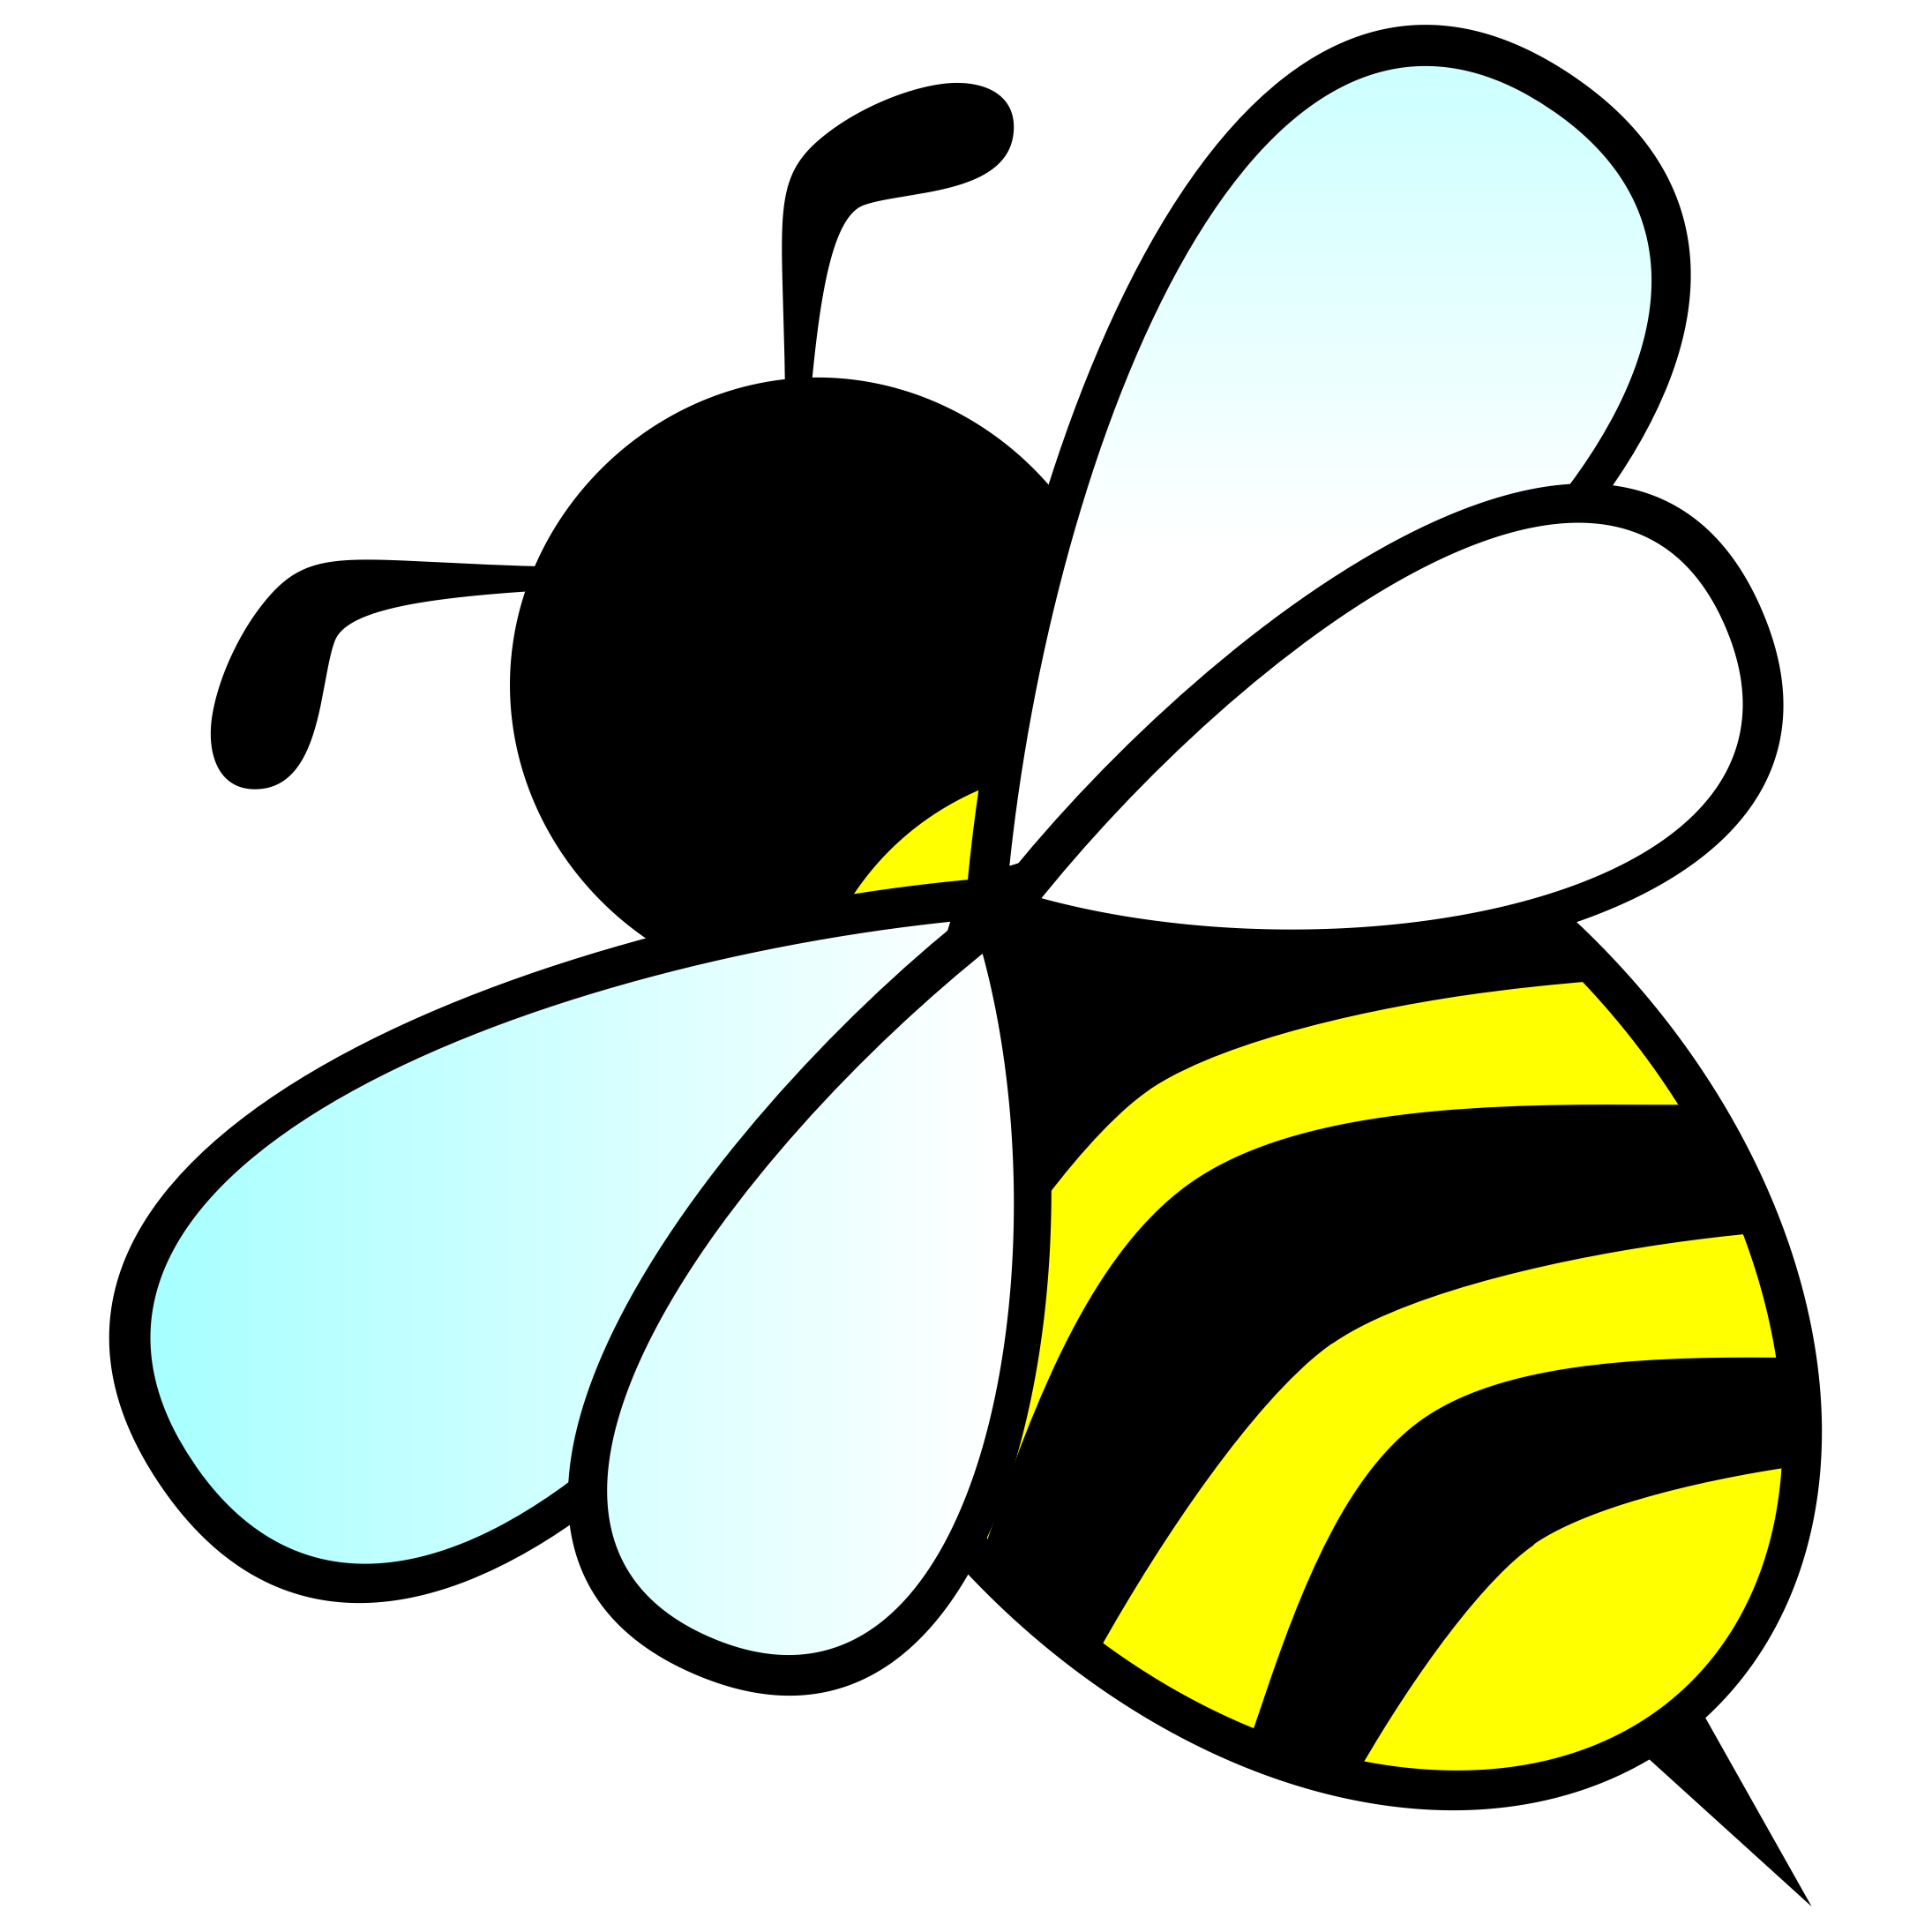 2190x2190 Bee Clipart 2 Bumble Bee Clip Art Free 5 All Rights Clipartcow 3